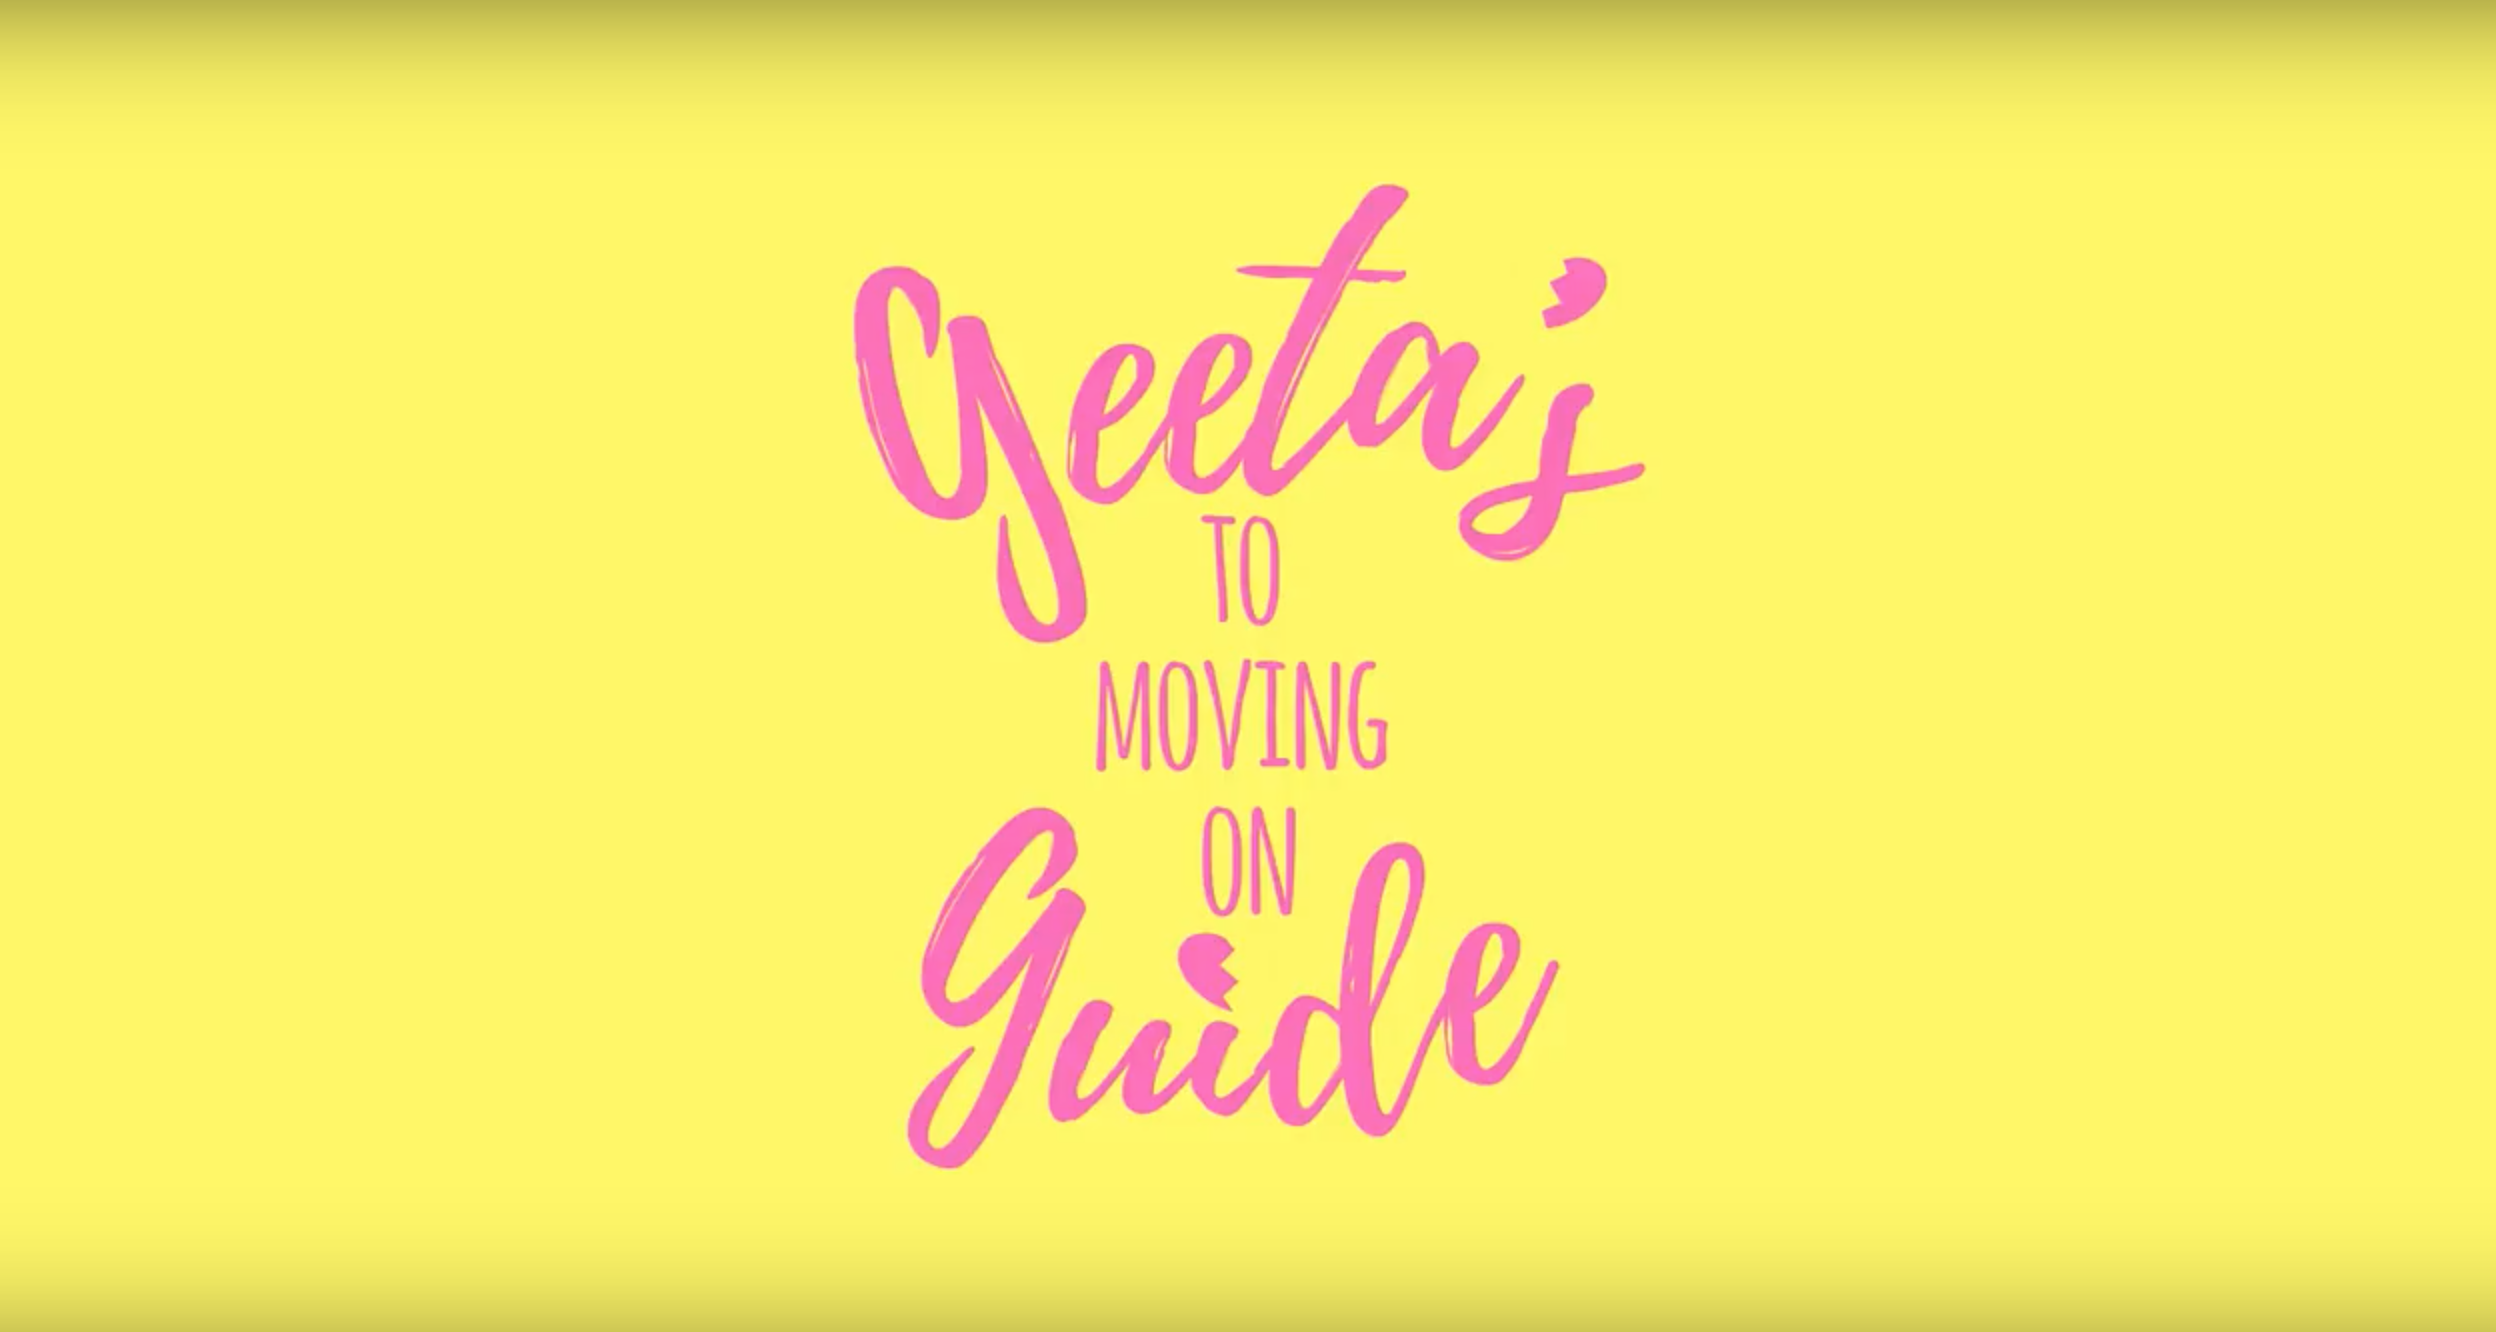 GEETA'S GUIDE TO MOVING ON Webseries